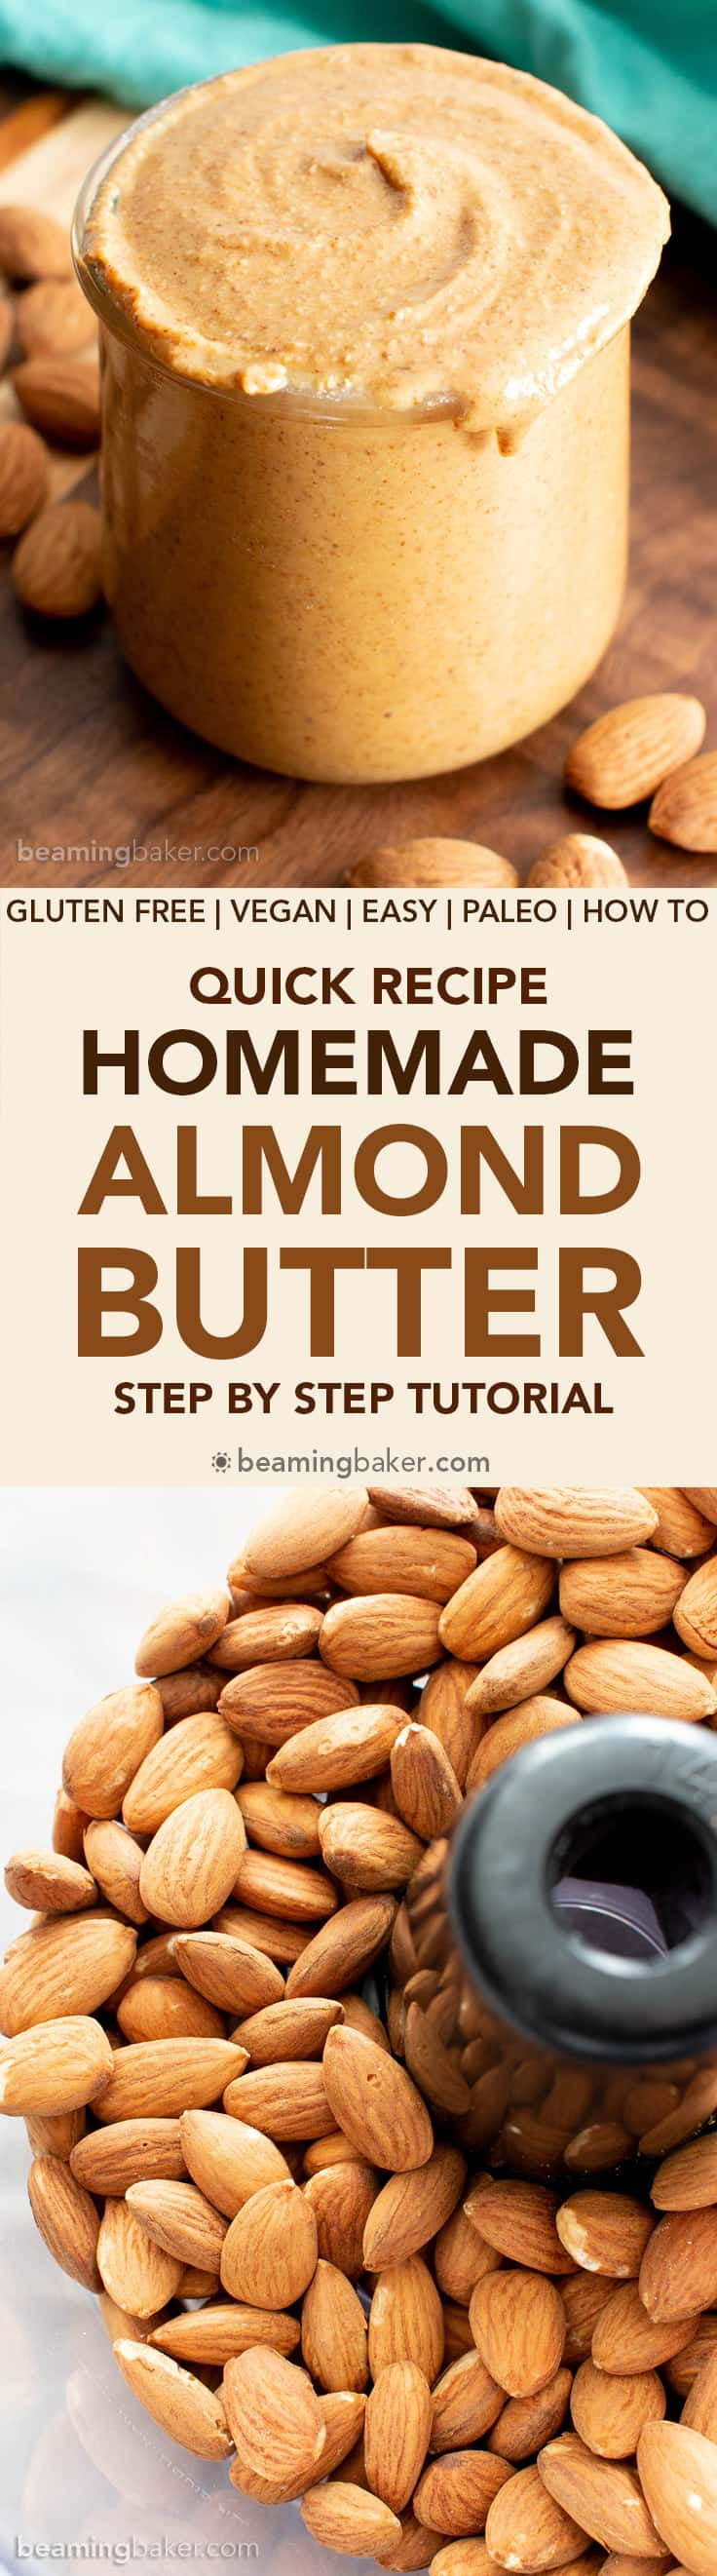 Easy Homemade Almond Butter Recipe: learn how to make healthy almond butter in minutes! All you need is 1 ingredient to make the best homemade almond butter ever! #Homemade #AlmondButter #Vegan #Almonds #GlutenFree | Recipe at BeamingBaker.com